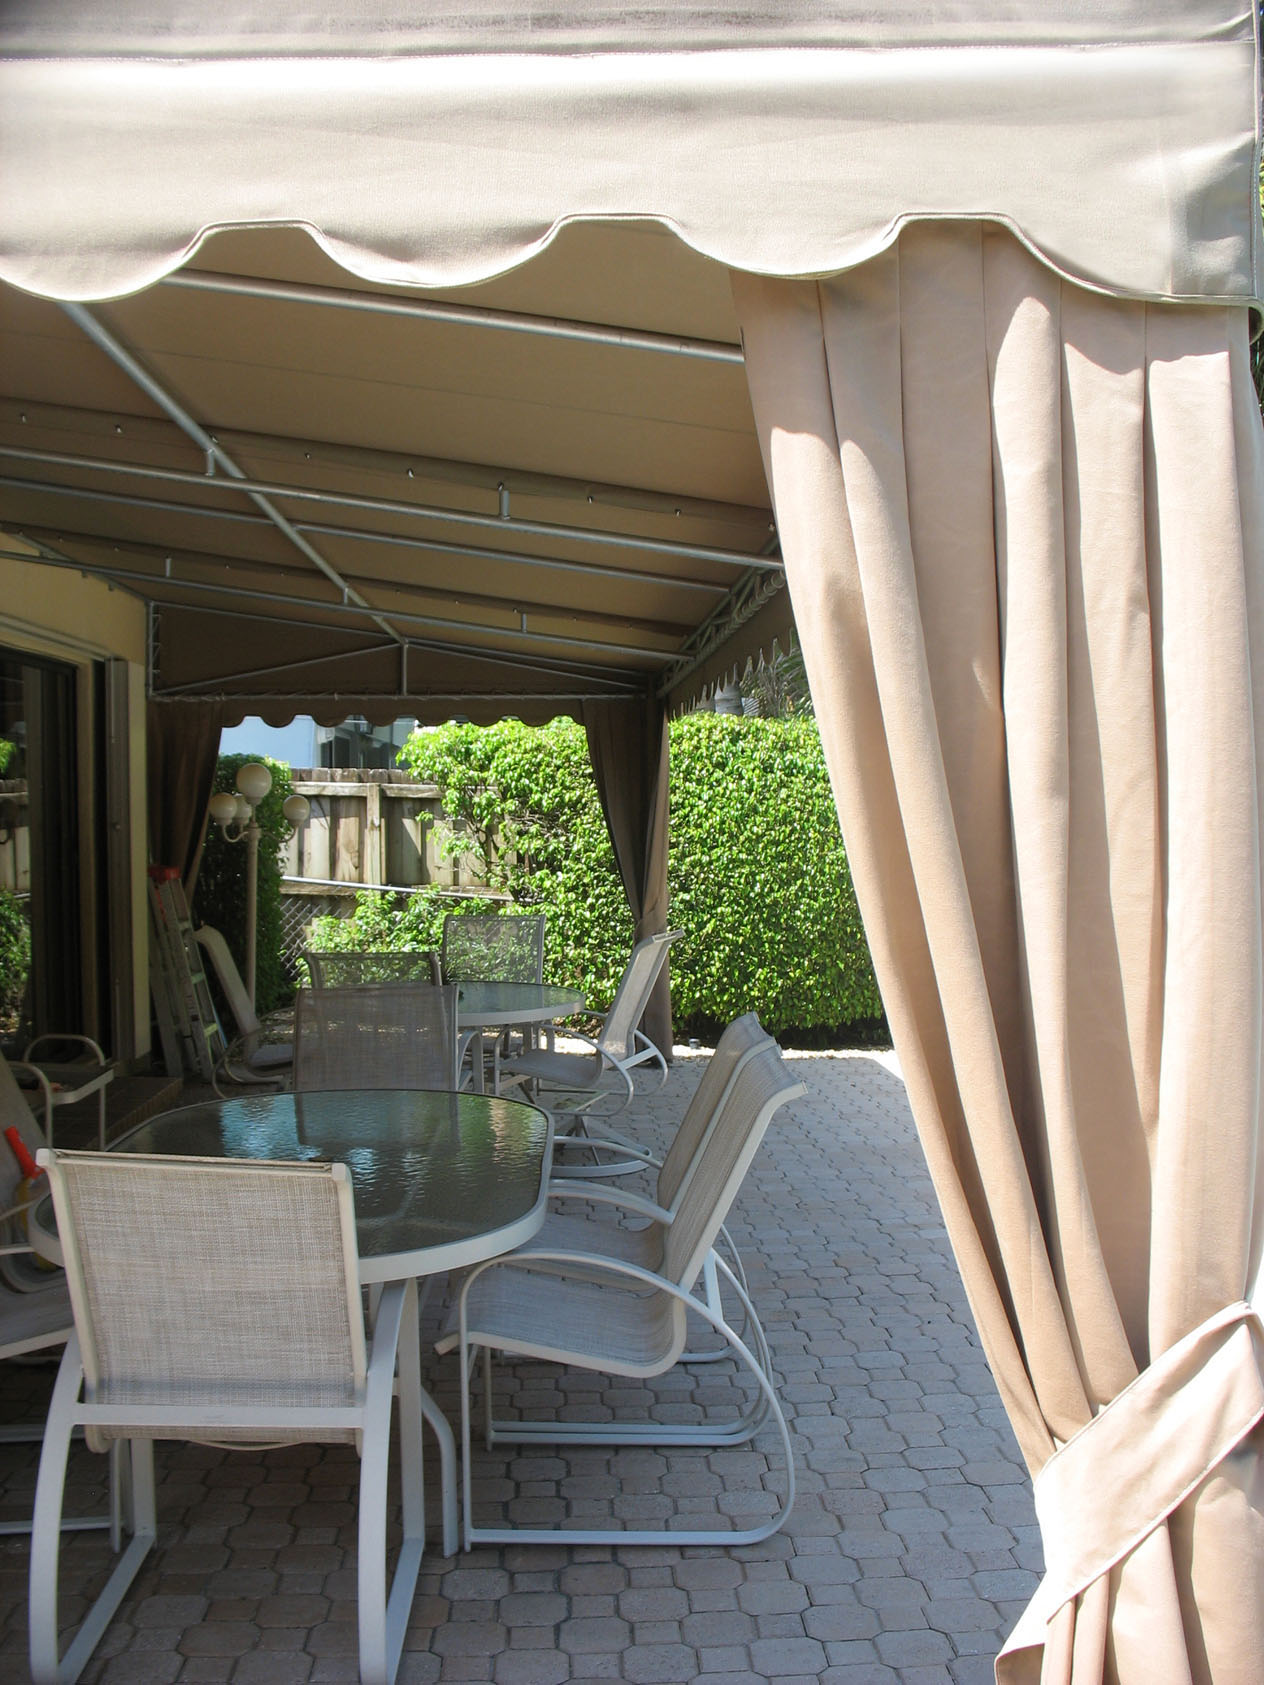 Lean-To Patio Awning with Curtains | LLOYDTON AWNINGS